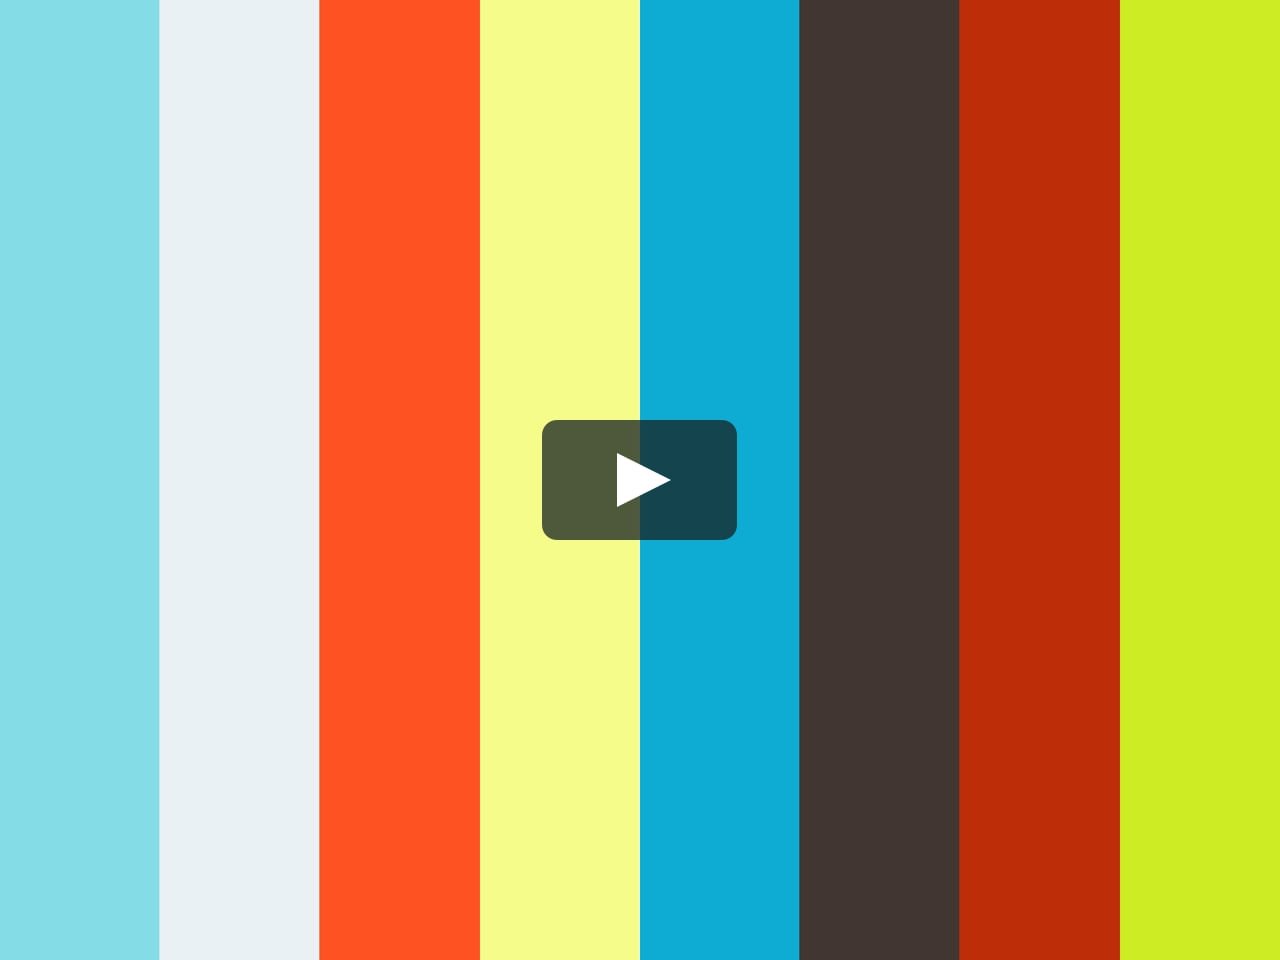 Cme Season 3 Music Video Radiohead Lotus Flower On Vimeo